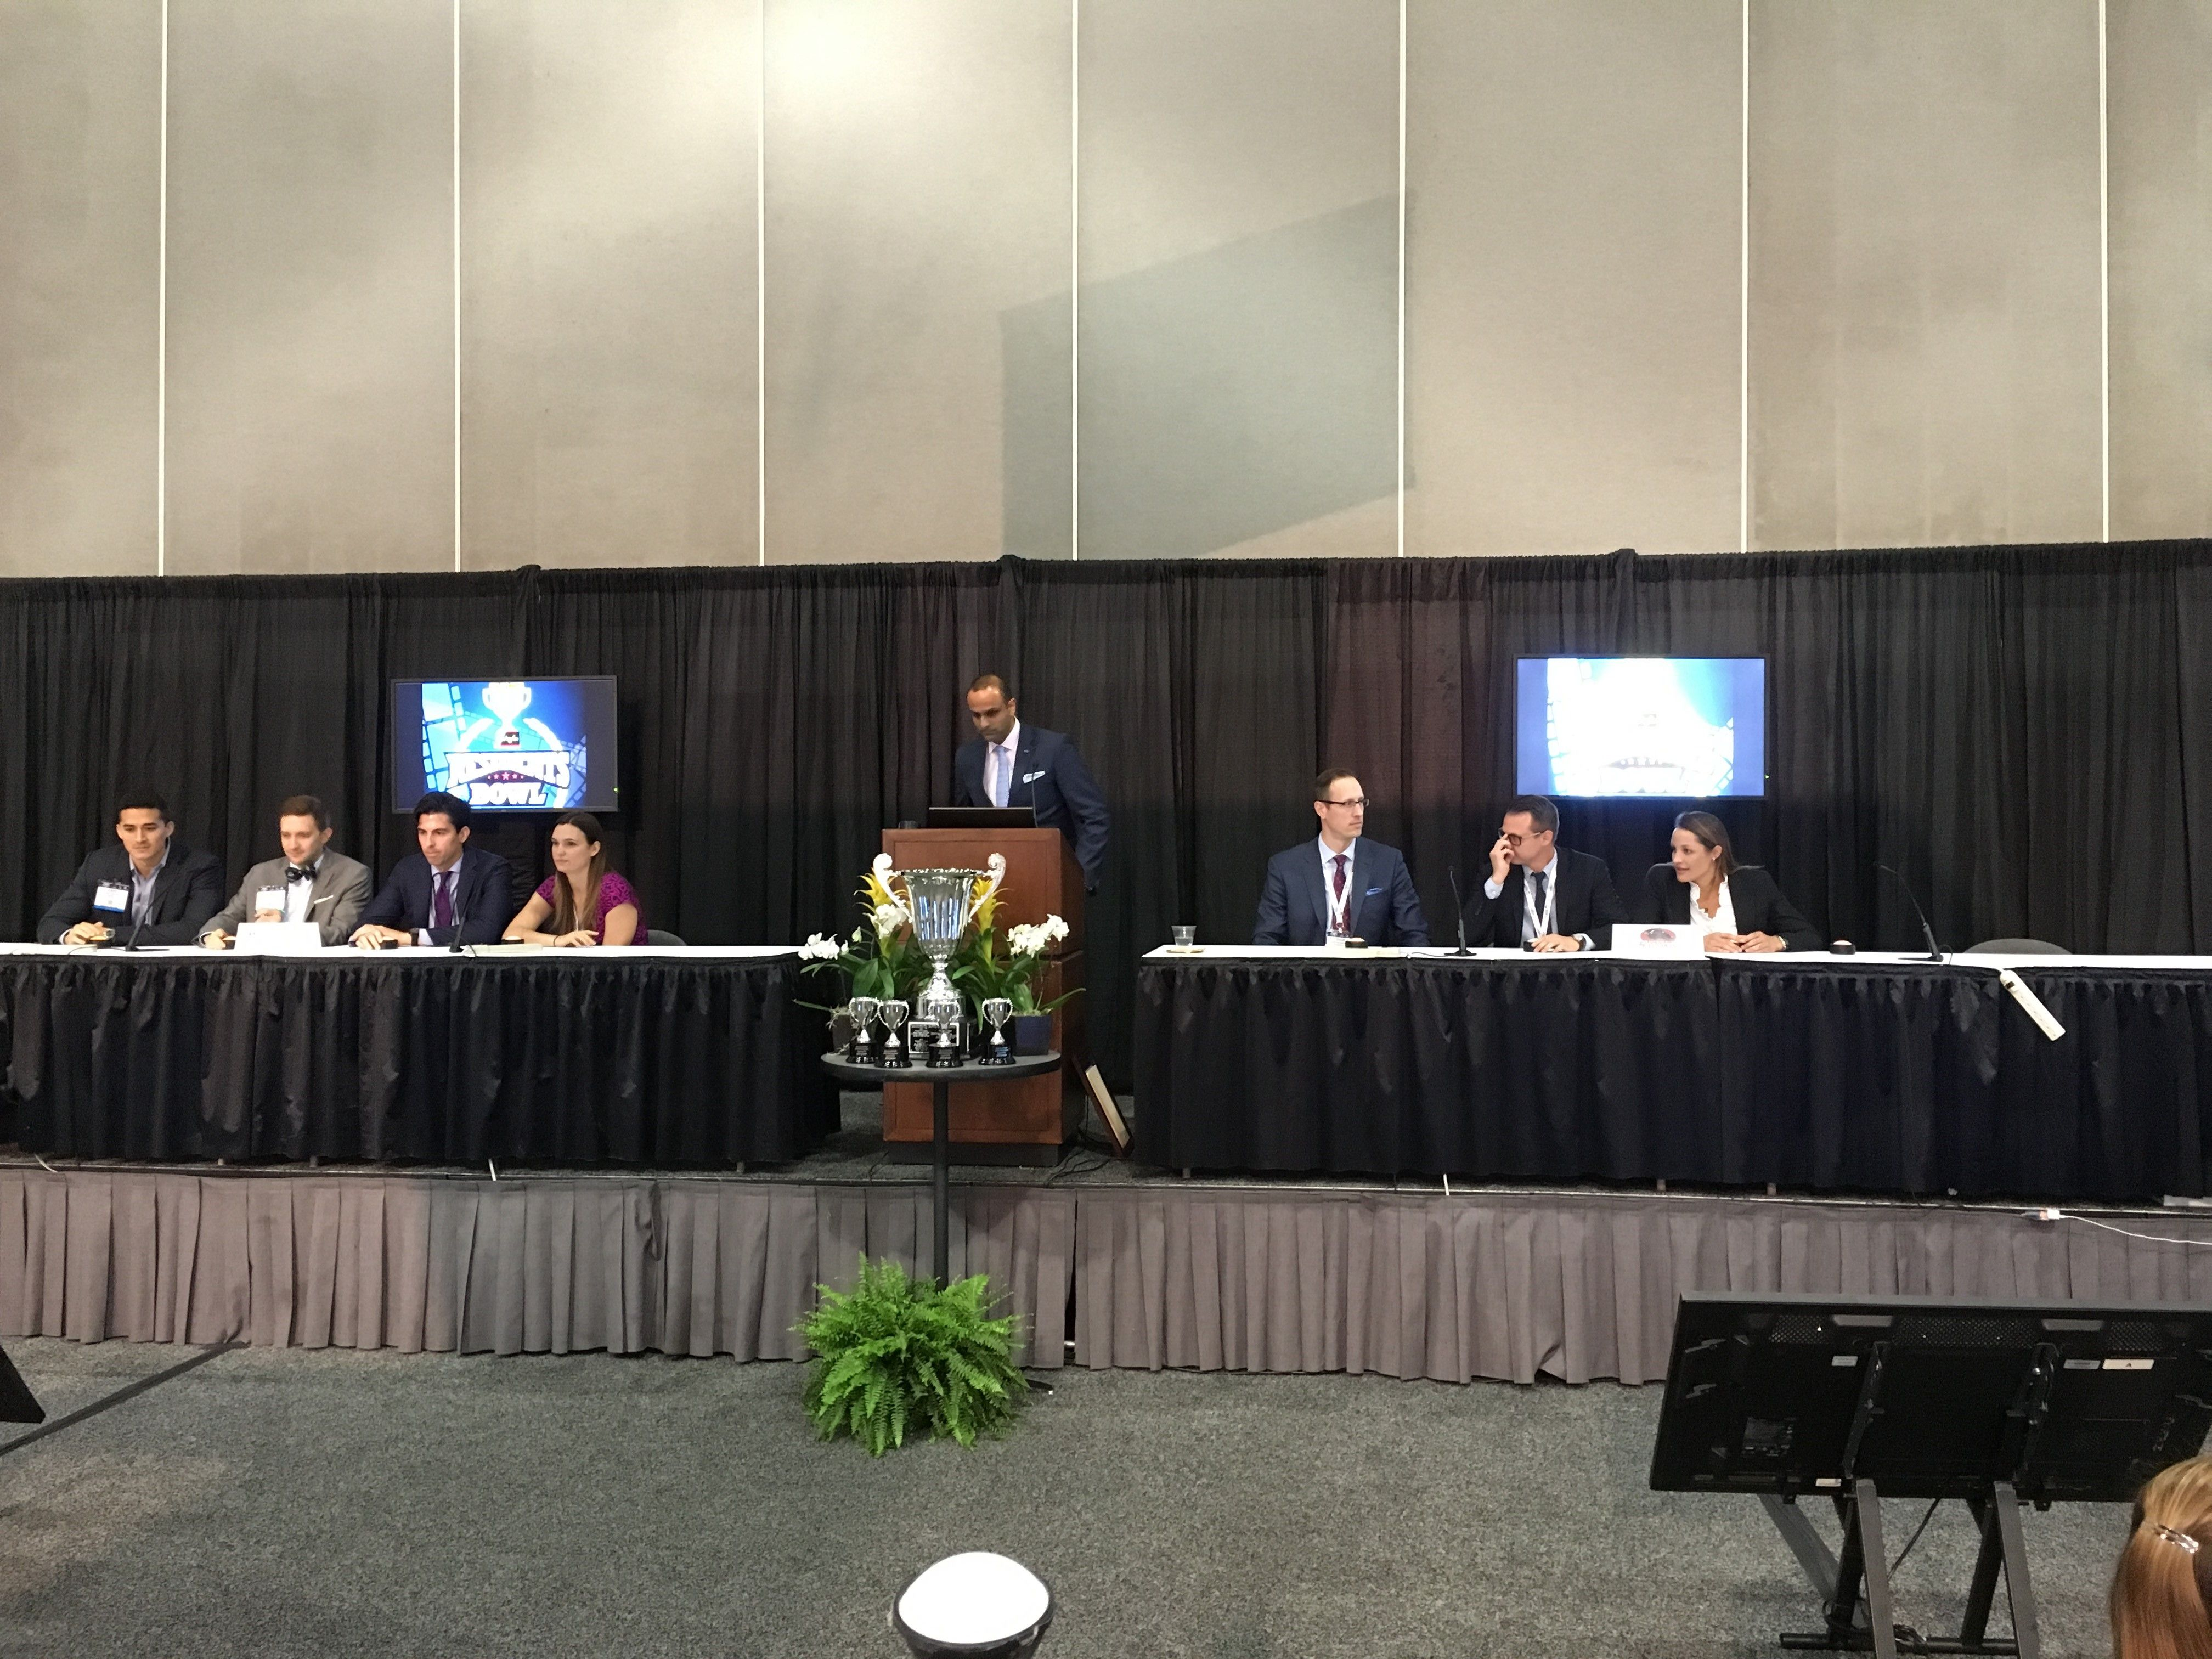 The stage is set! It's all Illinois in the Residents Bowl final with Northwestern vs Southern Illinois University. #PSTM16